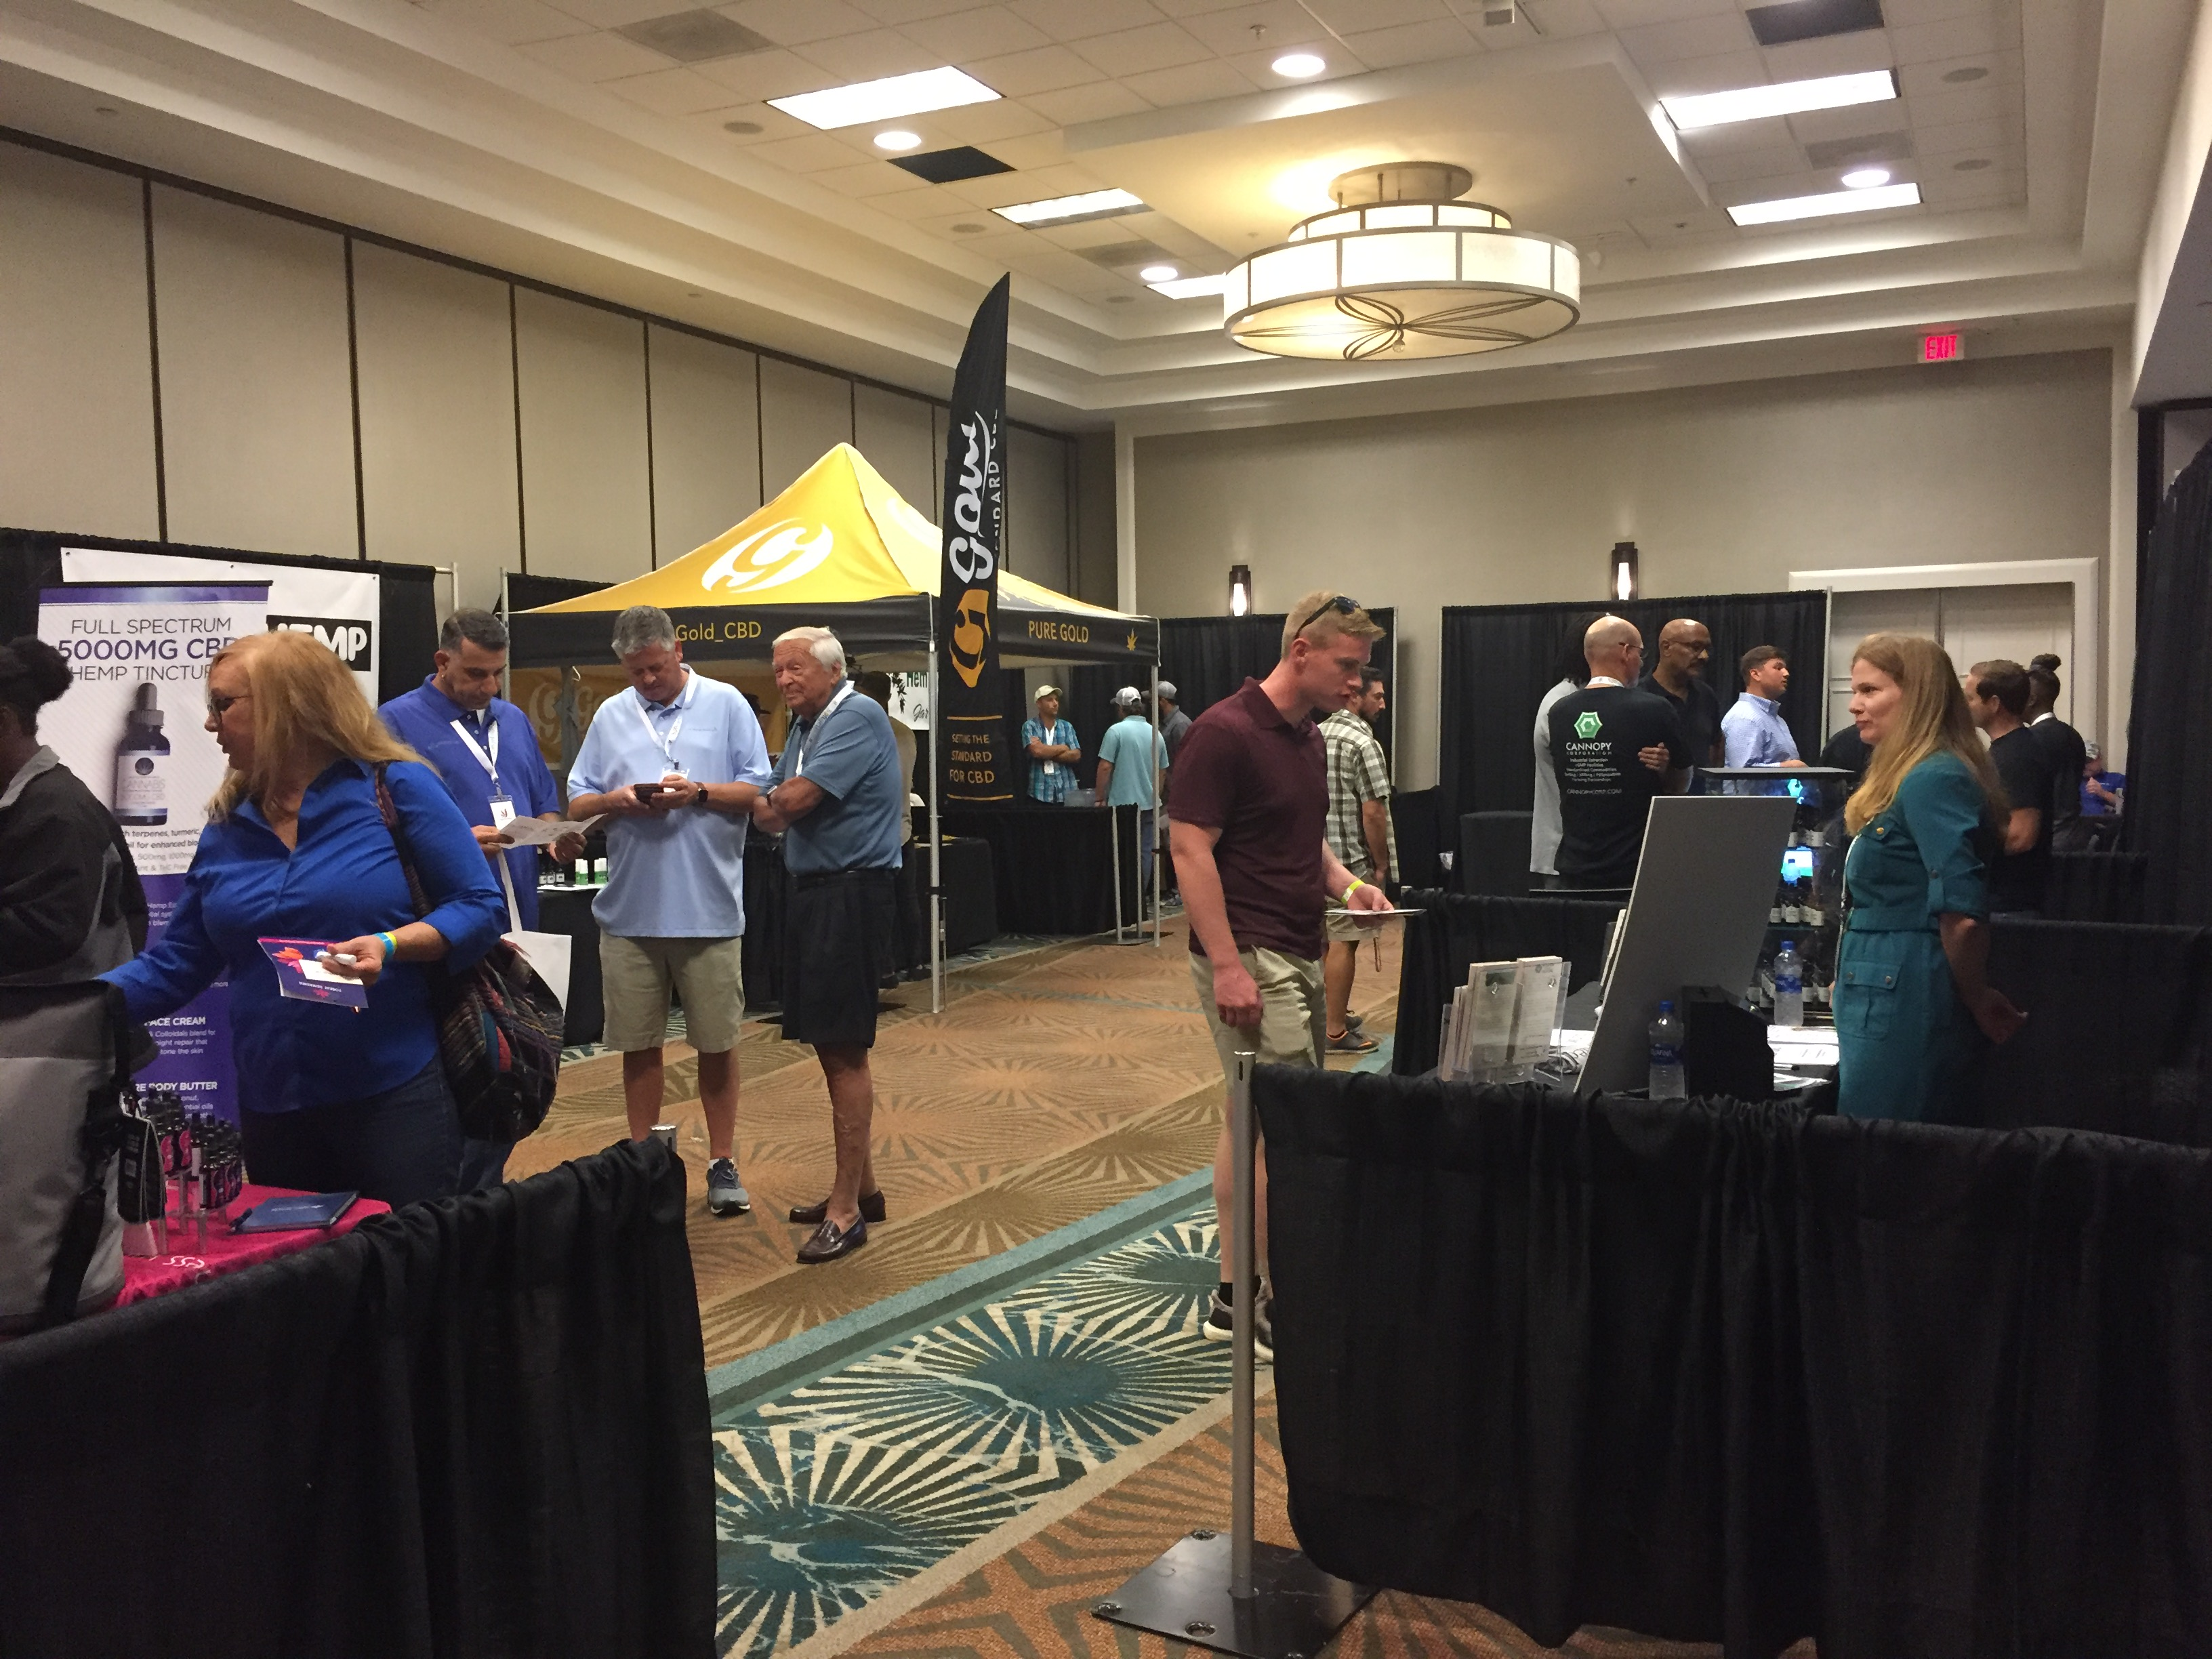 Part of the Expo room during networking time at the inaugural Carolina Hemp Festival and Expo 2018. Photo: Kay Whatley